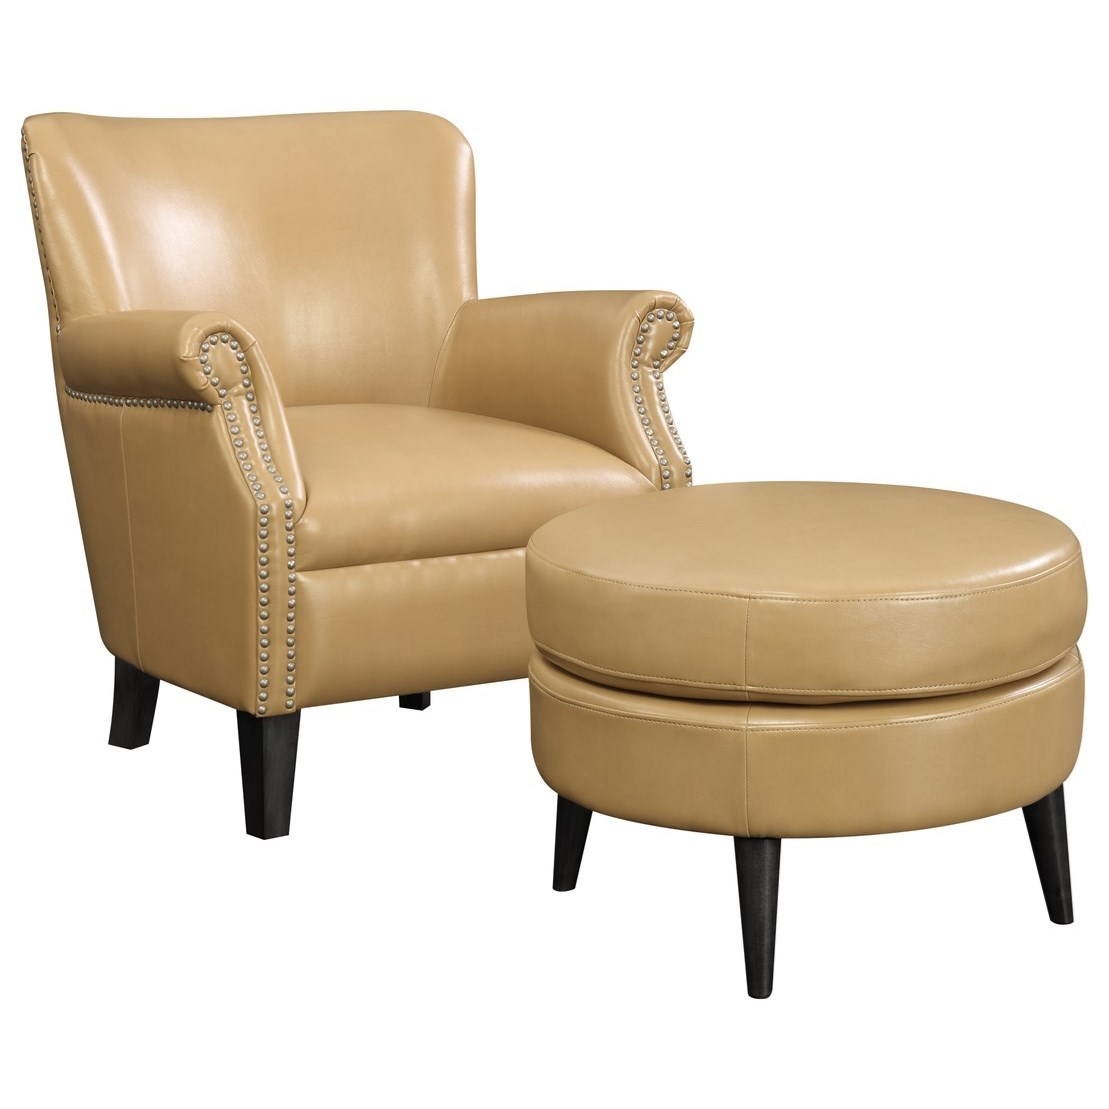 Oscar Accent Chair and Ottoman by Emerald at Northeast Factory Direct